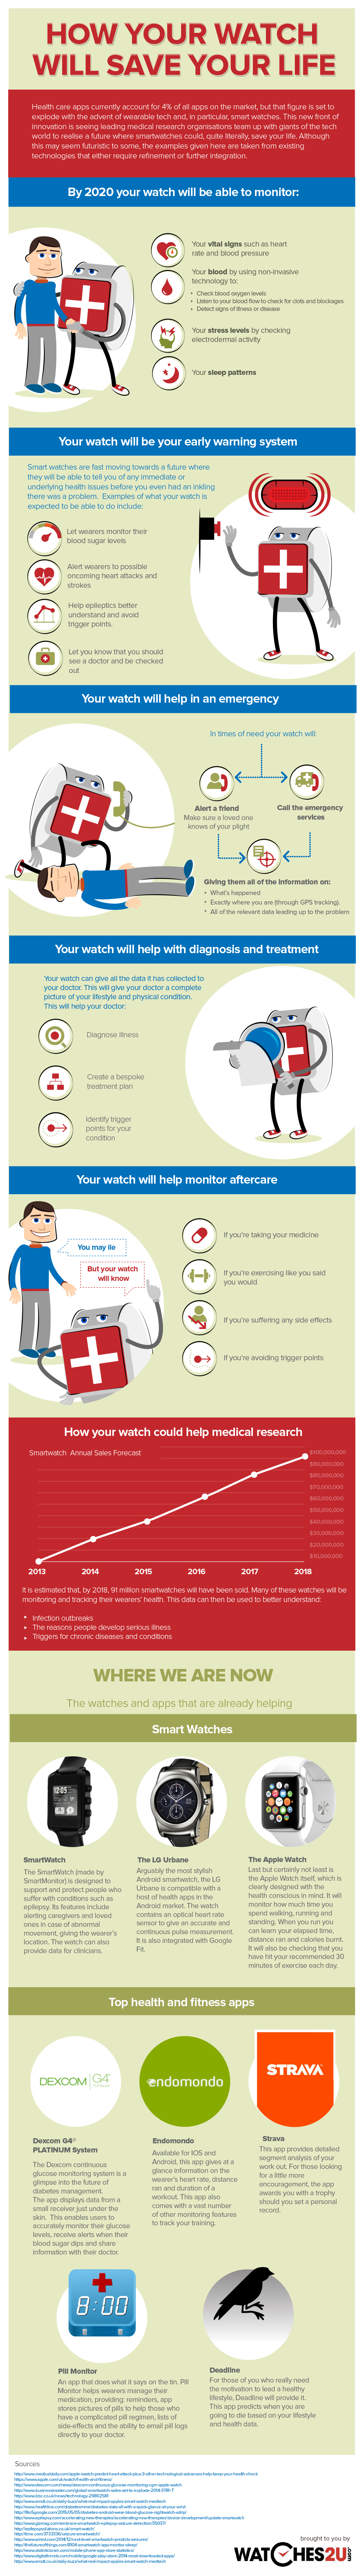 How your watch will save your life Infographic